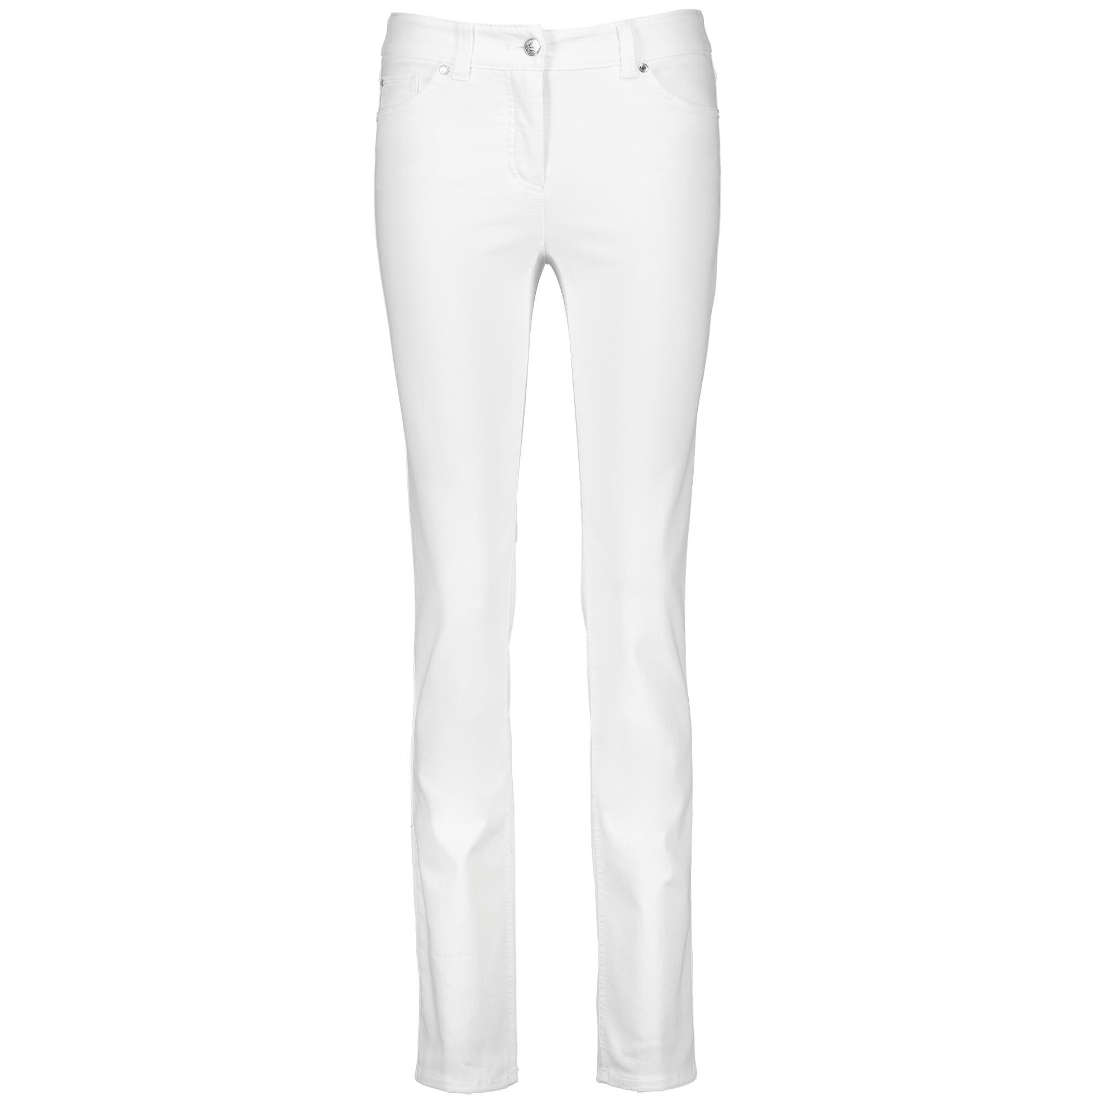 Gerry Edition jeans 92151-67810 in het Wit